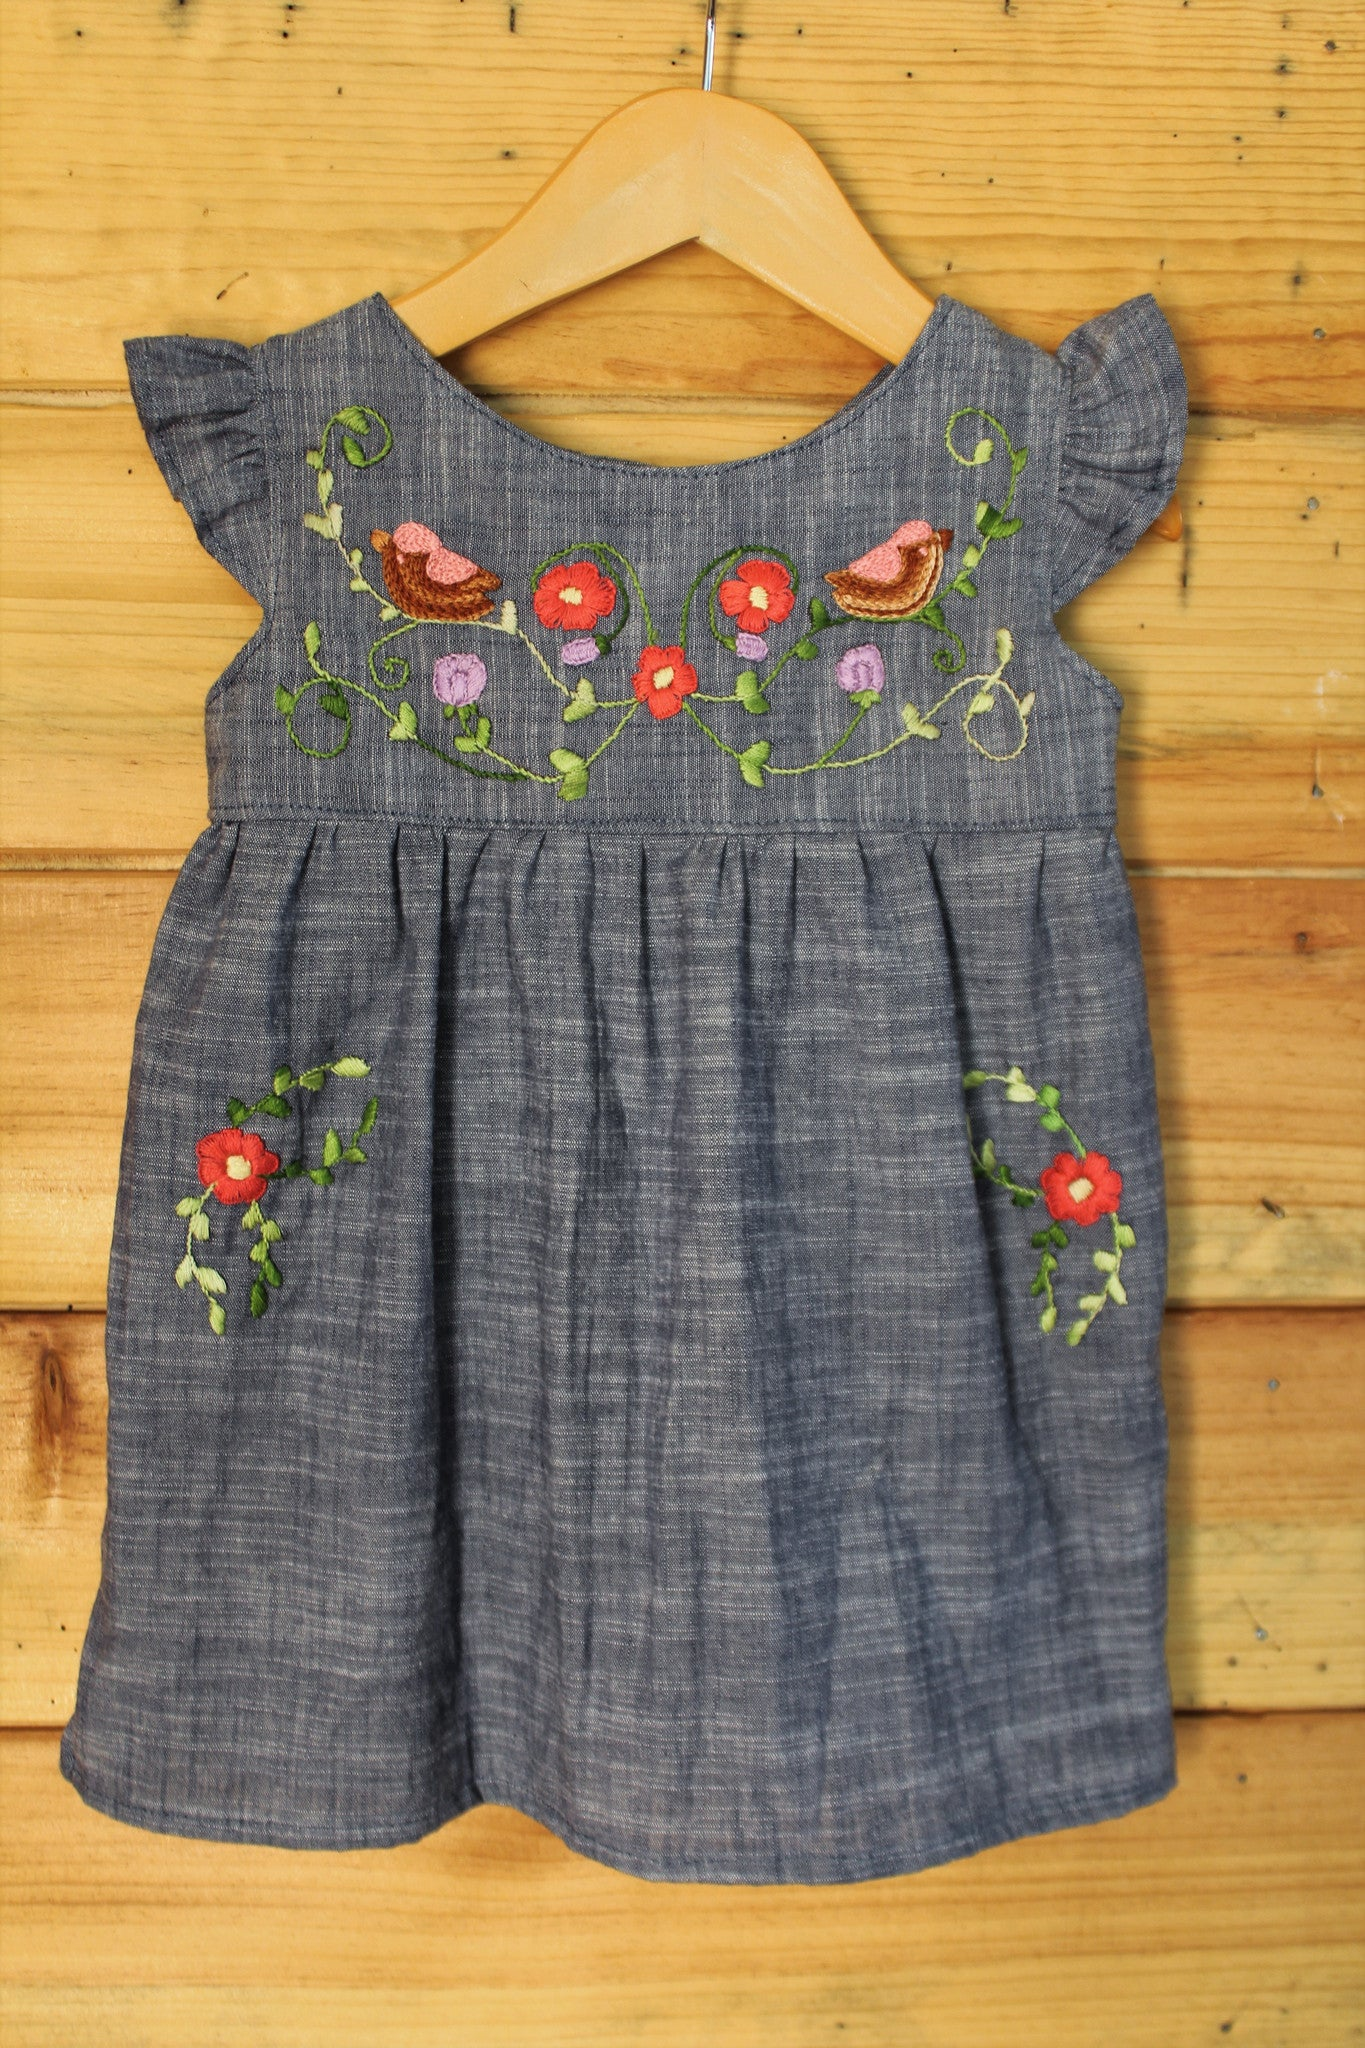 Traditional Oaxacan Tunic - Birdies & Floral Detail - Chambray -